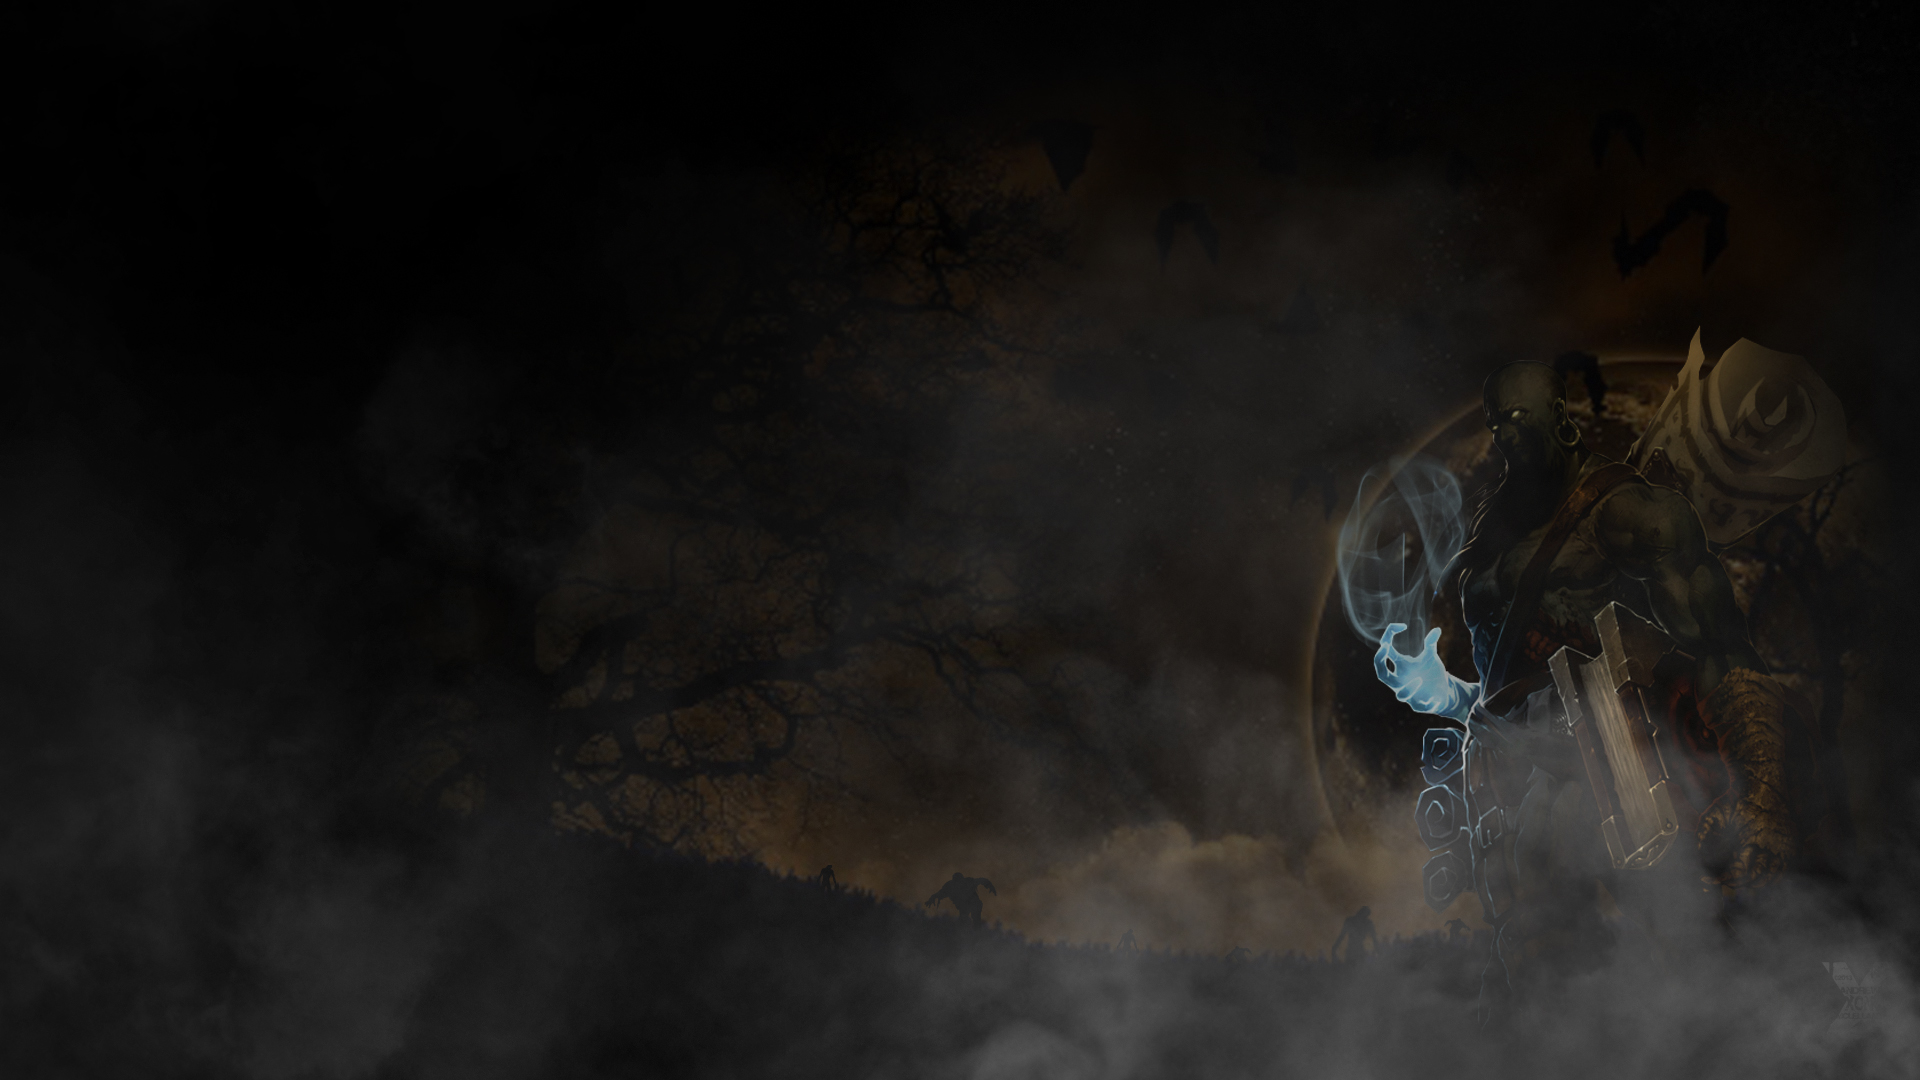 Zombie Ryze Deluxe Wallpaper - League of Legends Wallpapers